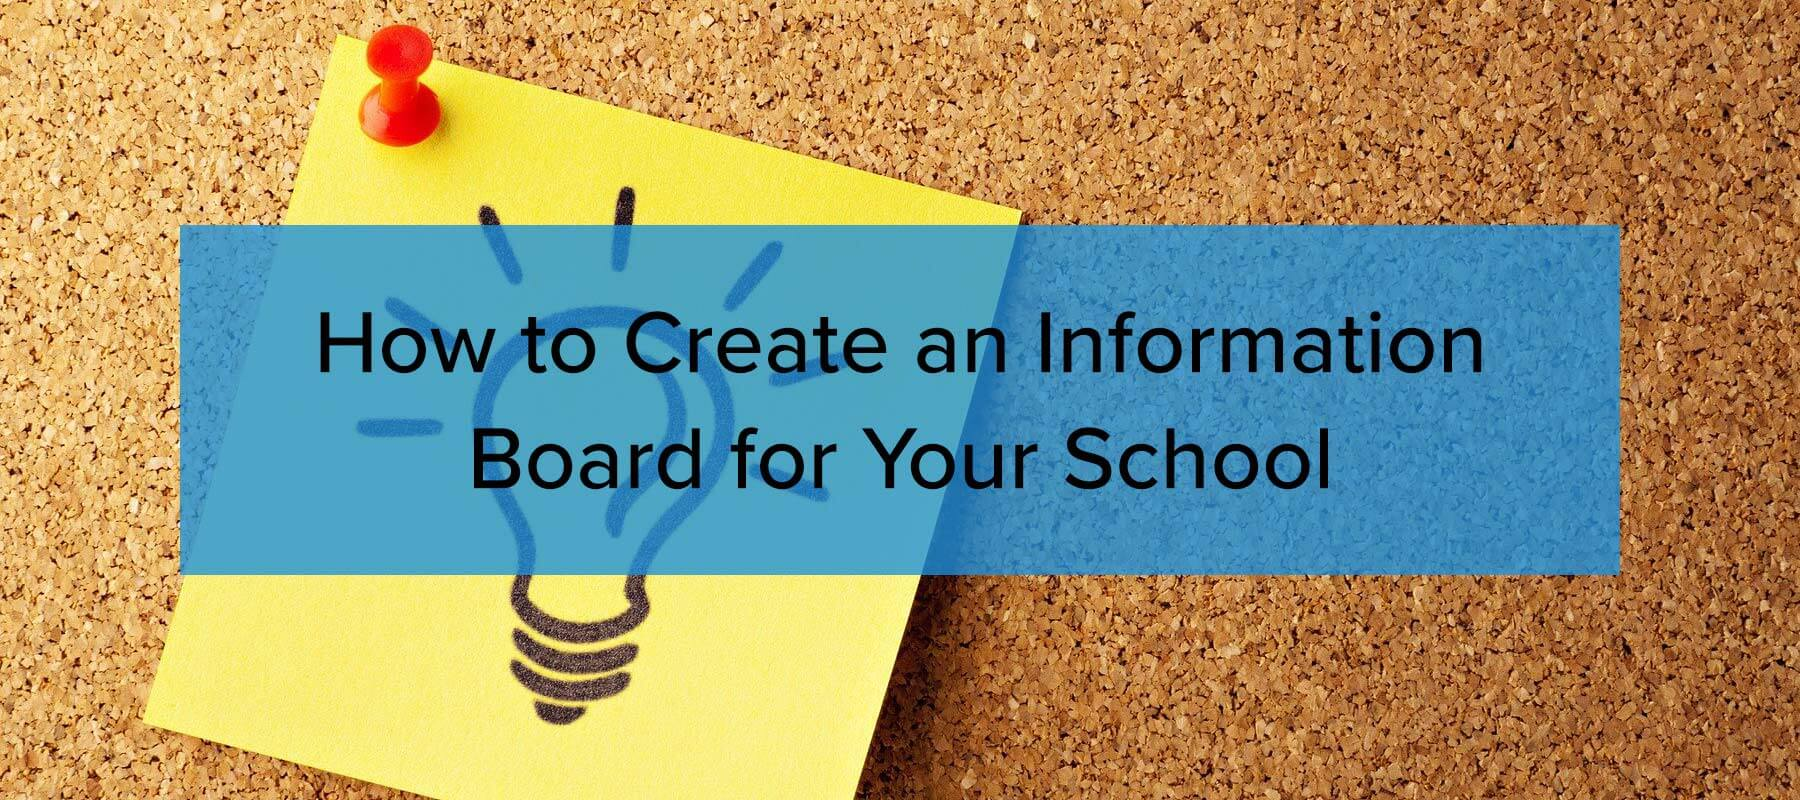 How to create an information board for your school